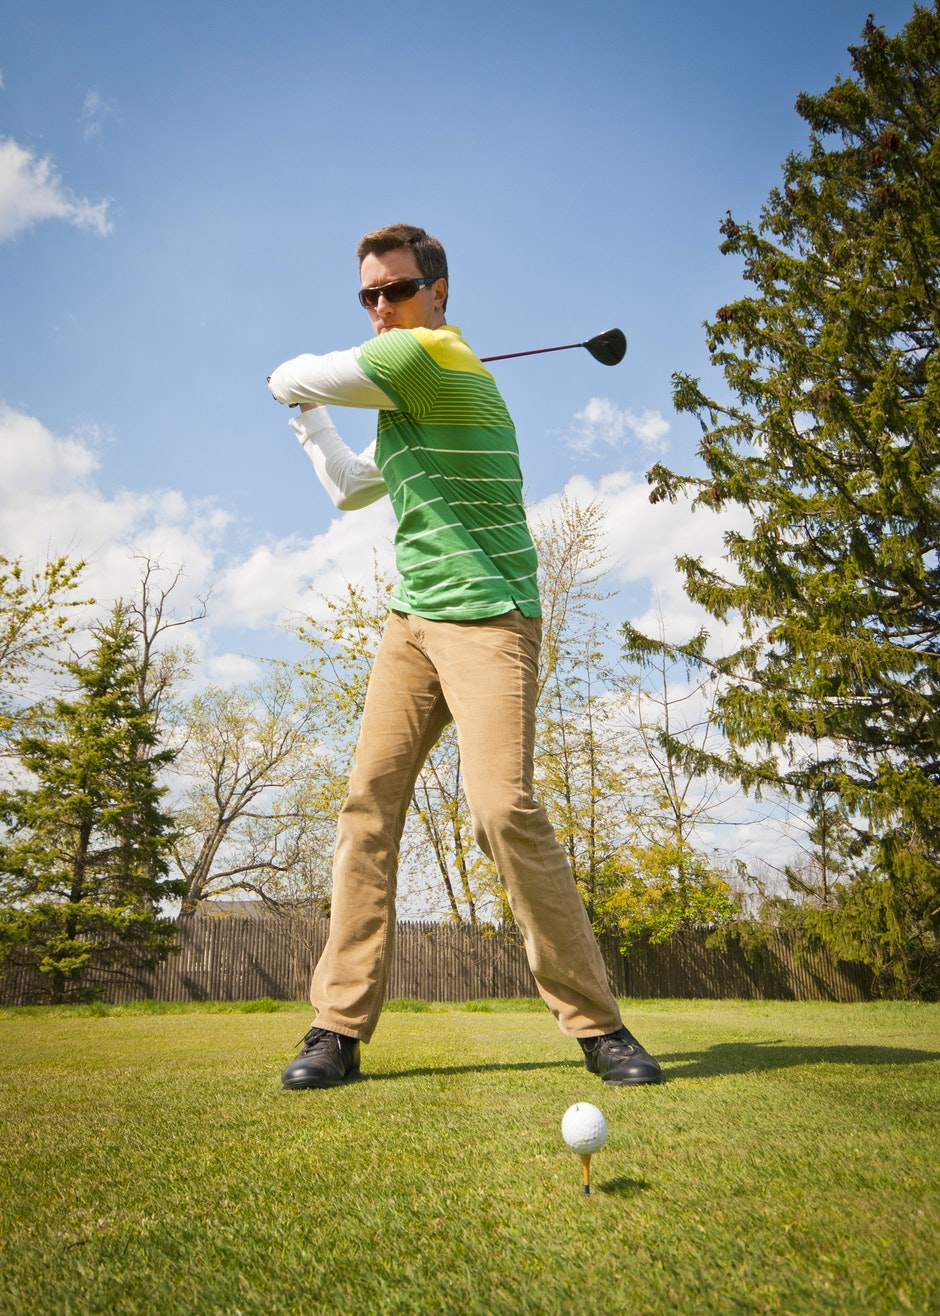 Man in Green and White Stripes Long Sleeve Shirt Holding Black Golf Club